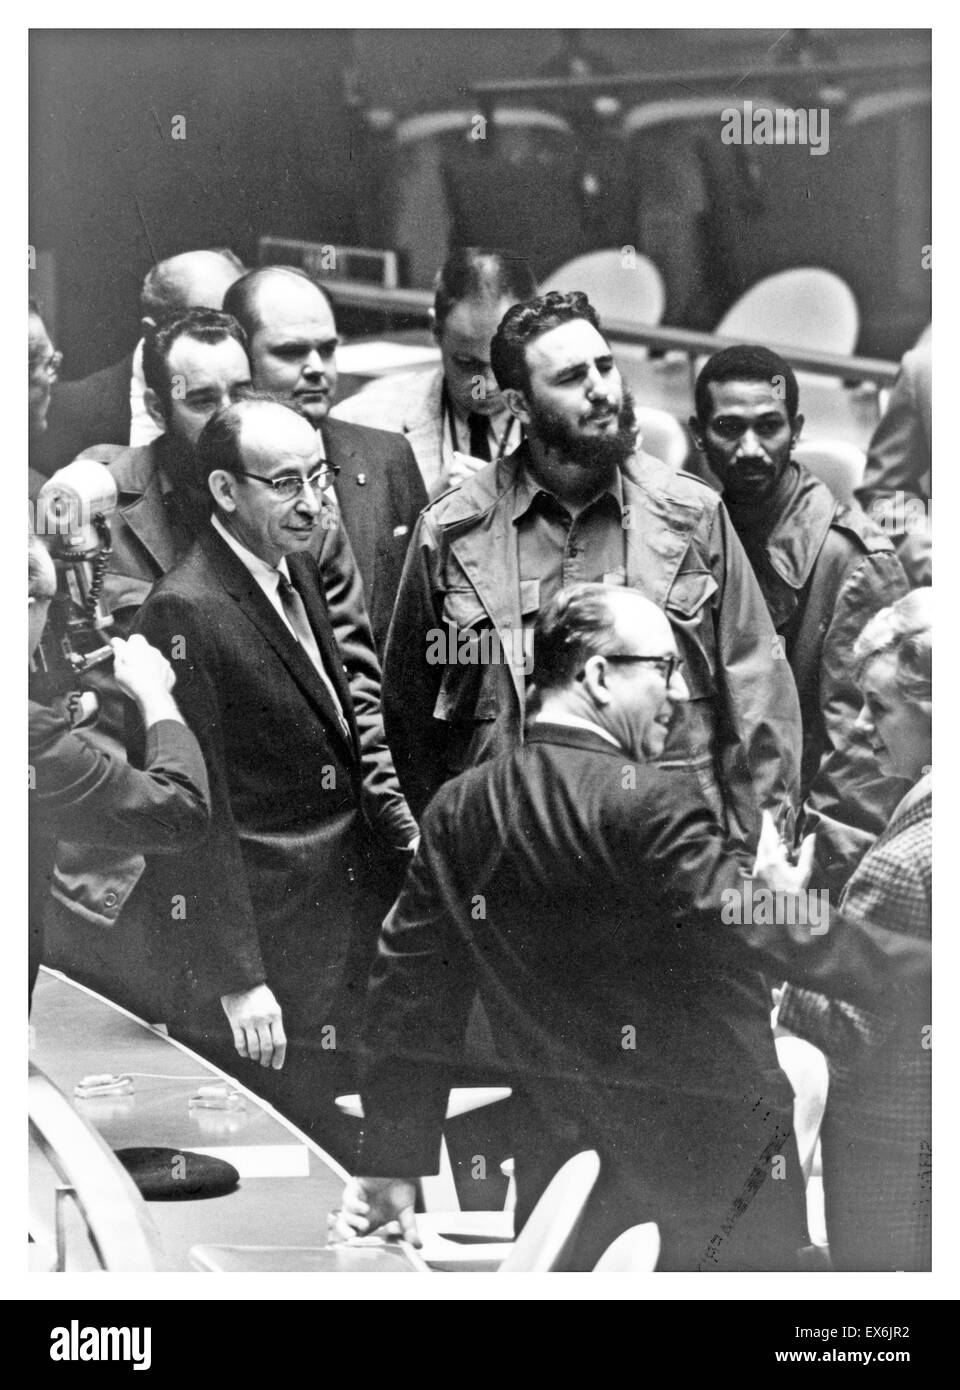 Fidel Castro visits the United Nations in New York, with the delegation of Cuba 1959 - Stock Image